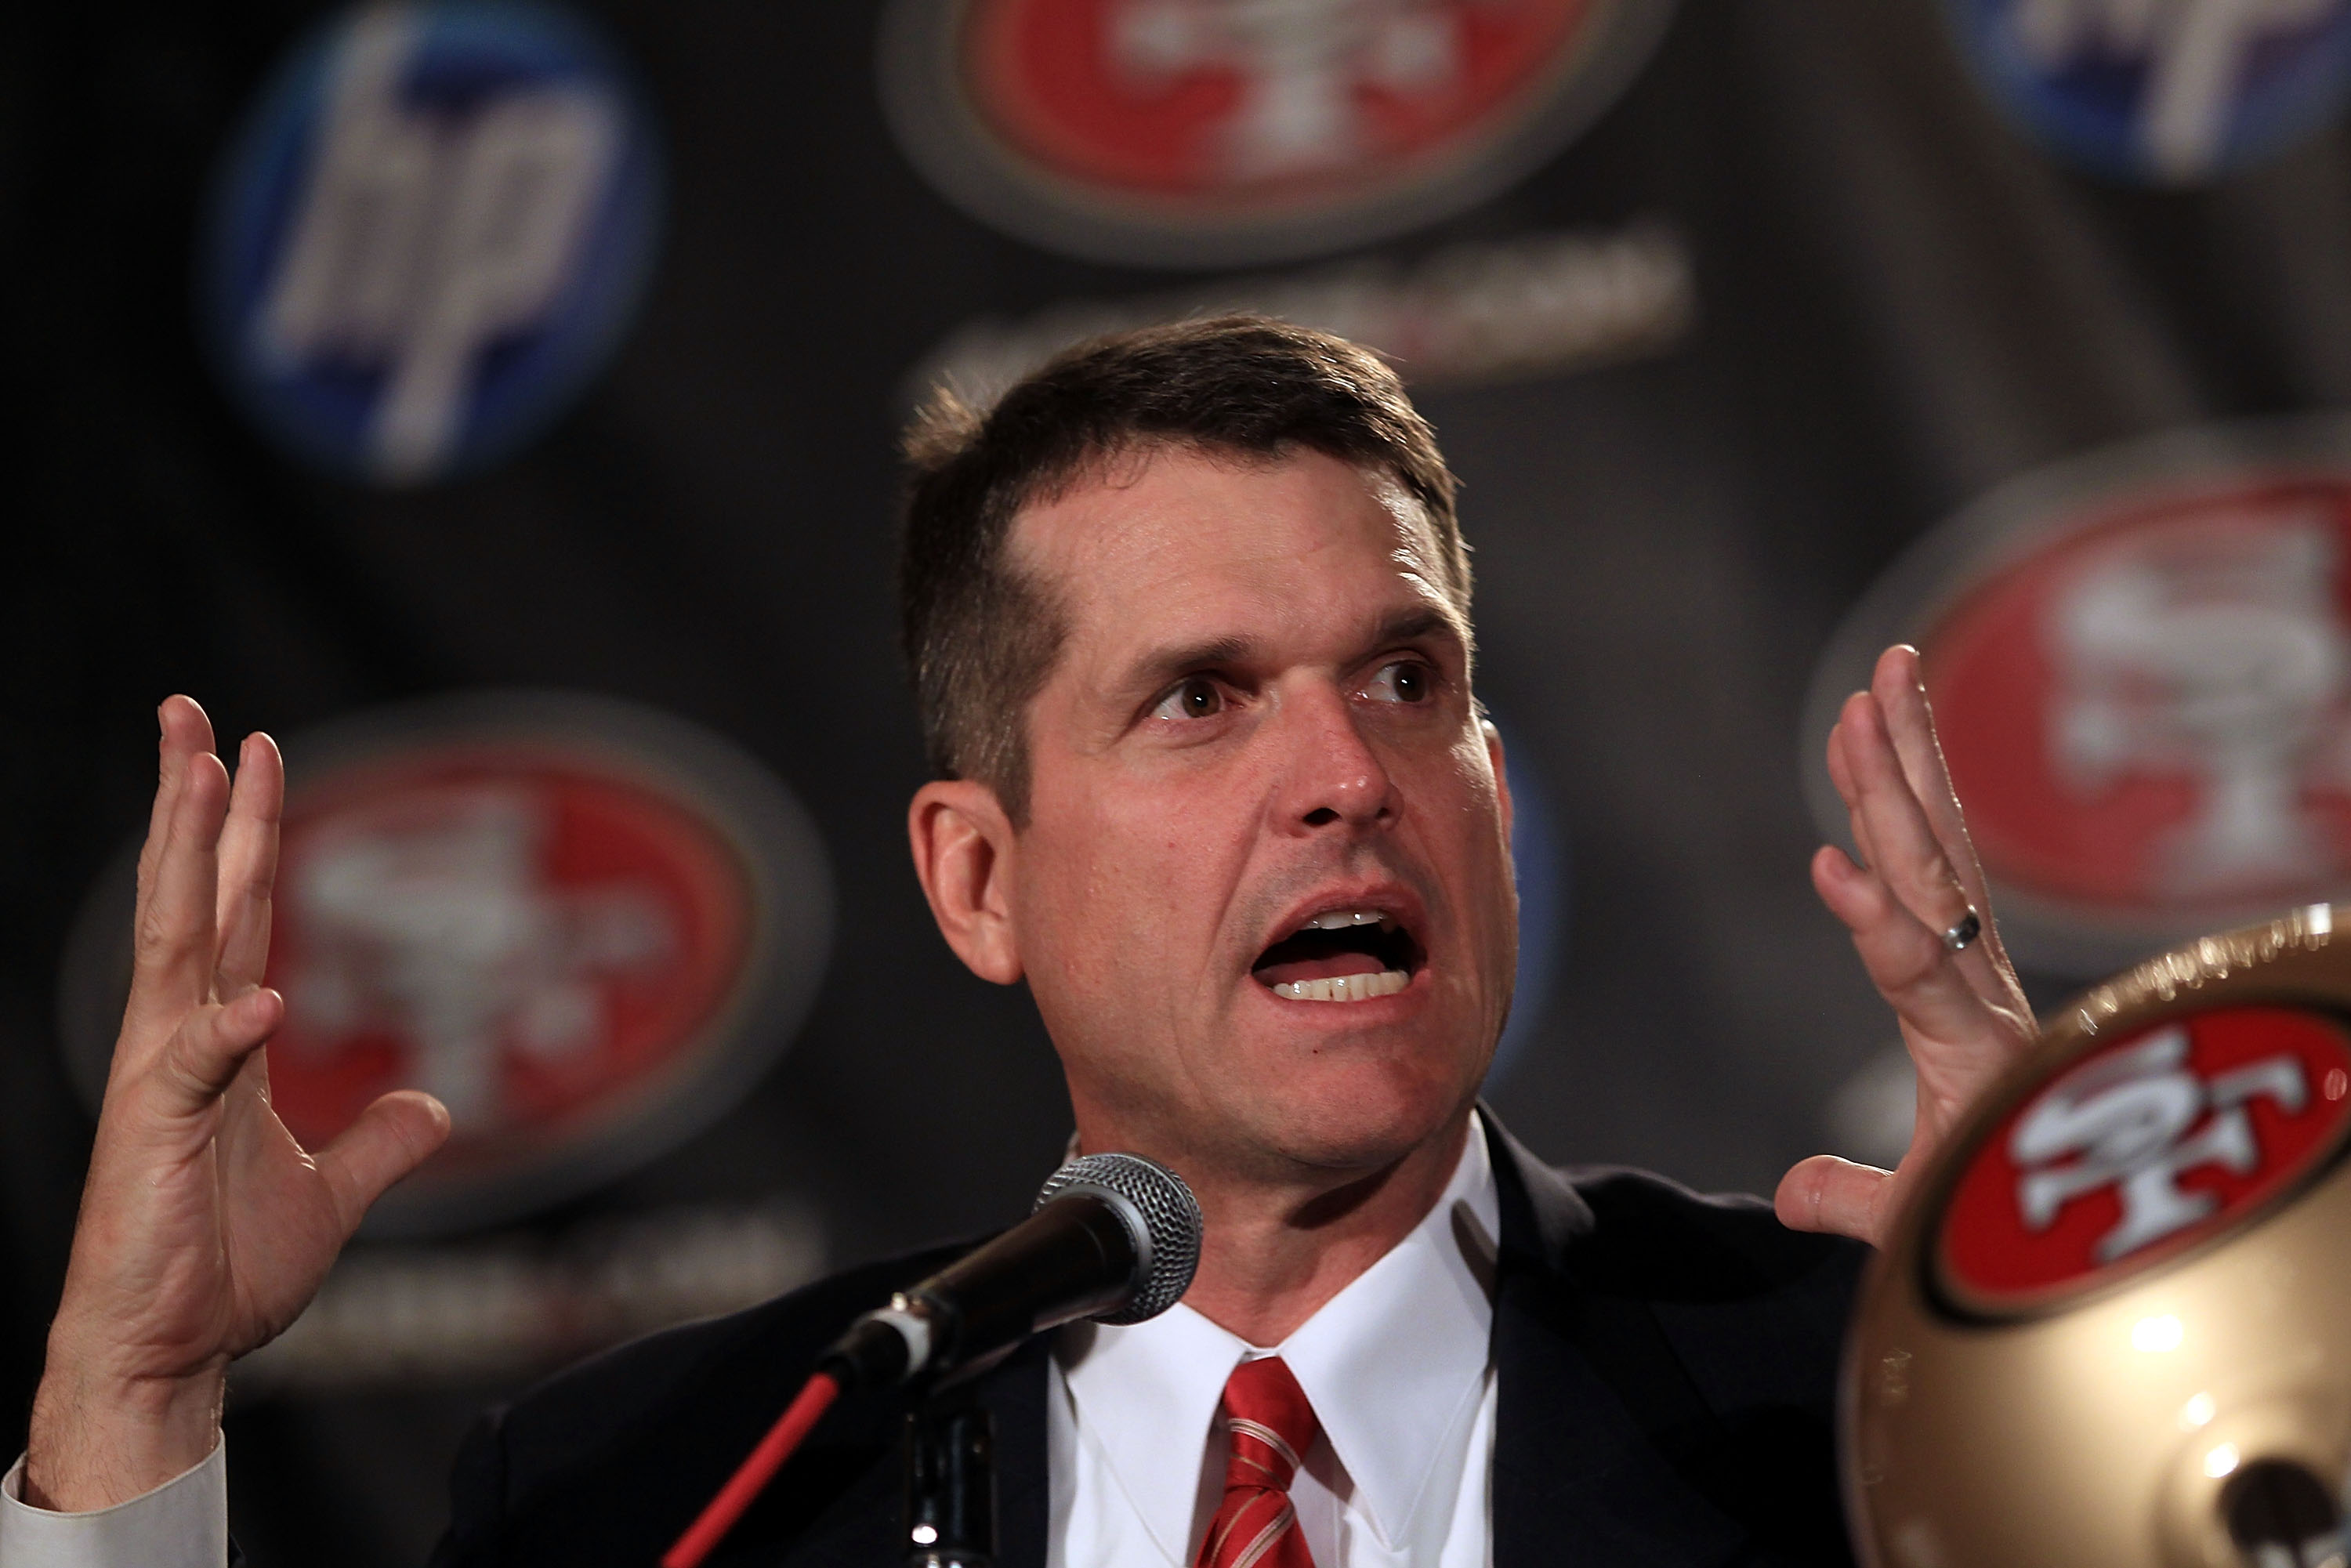 SAN FRANCISCO, CA - JANUARY 07:  Jim Harbaugh speaks at a press conference where he was introduced as the new San Francisco 49ers head coach at the Palace Hotel on January 7, 2011 in San Francisco, California.  (Photo by Ezra Shaw/Getty Images)